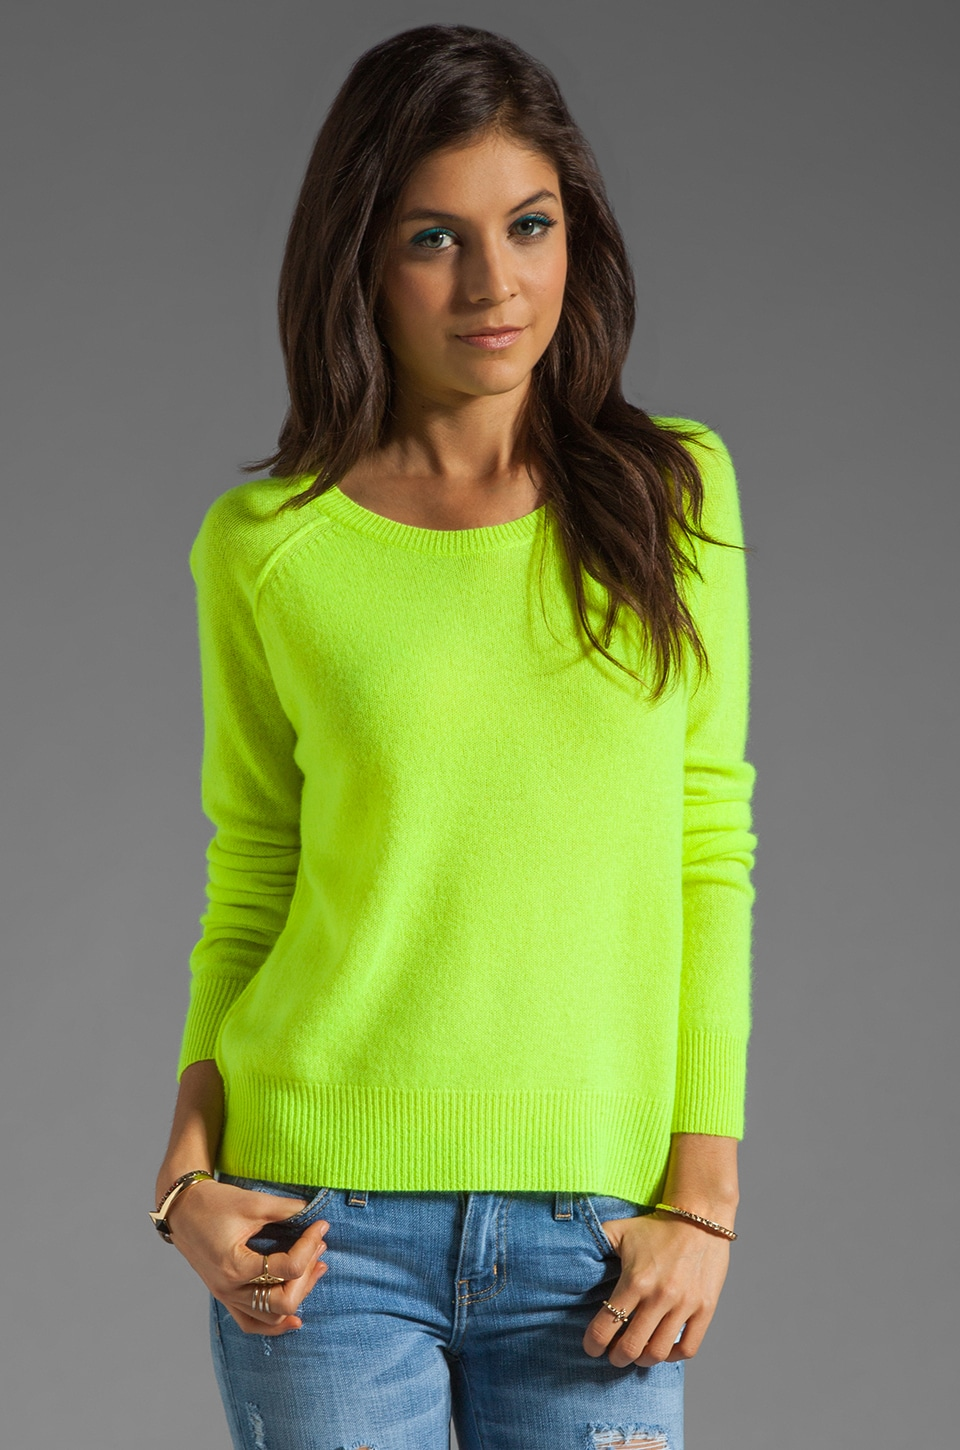 360 Sweater Charlie Nautical Neon Cashmere Sweater in Lime